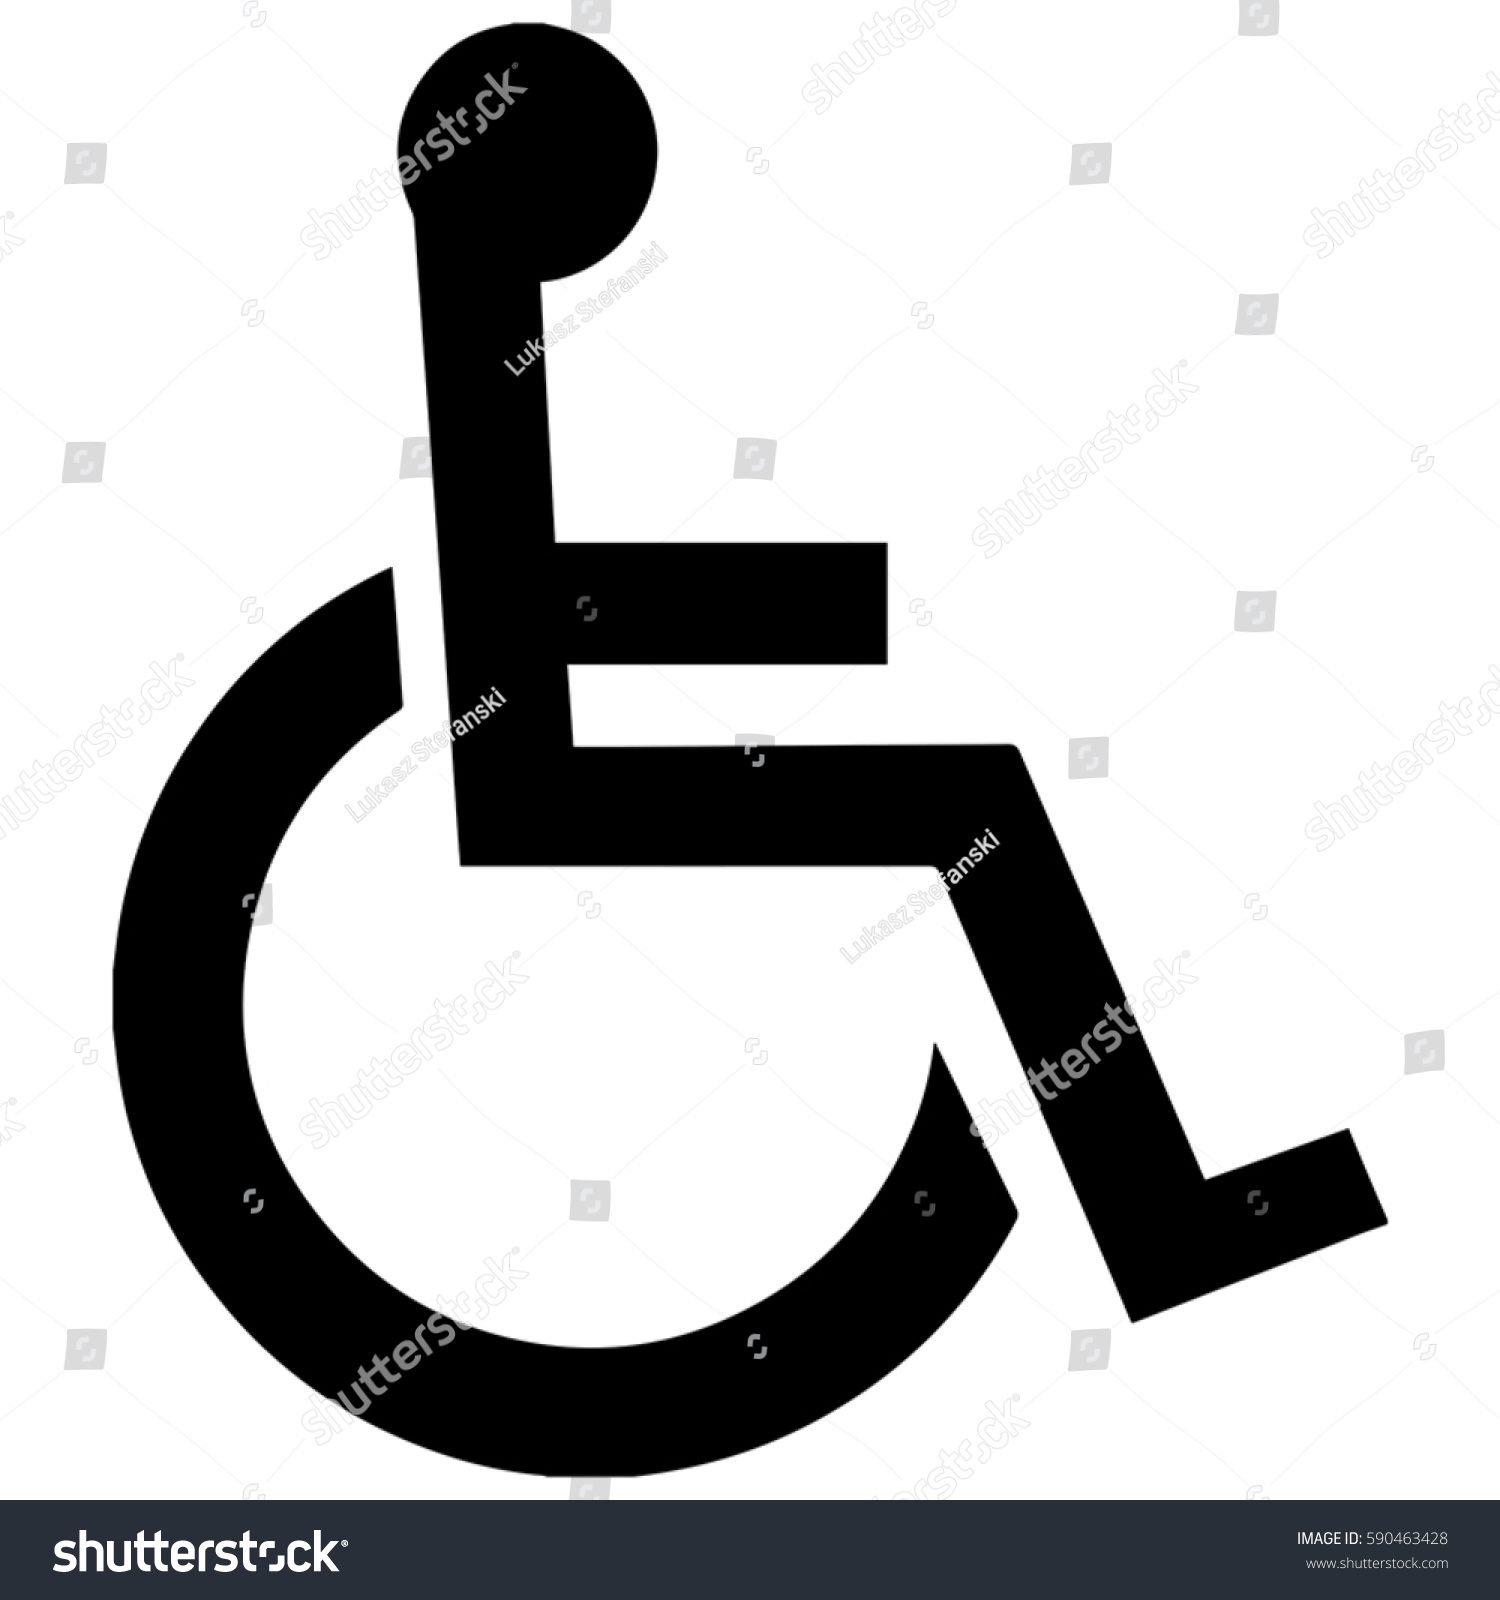 Toilet Symbol Unicode Disabled Accessible Facilities Stock Vector